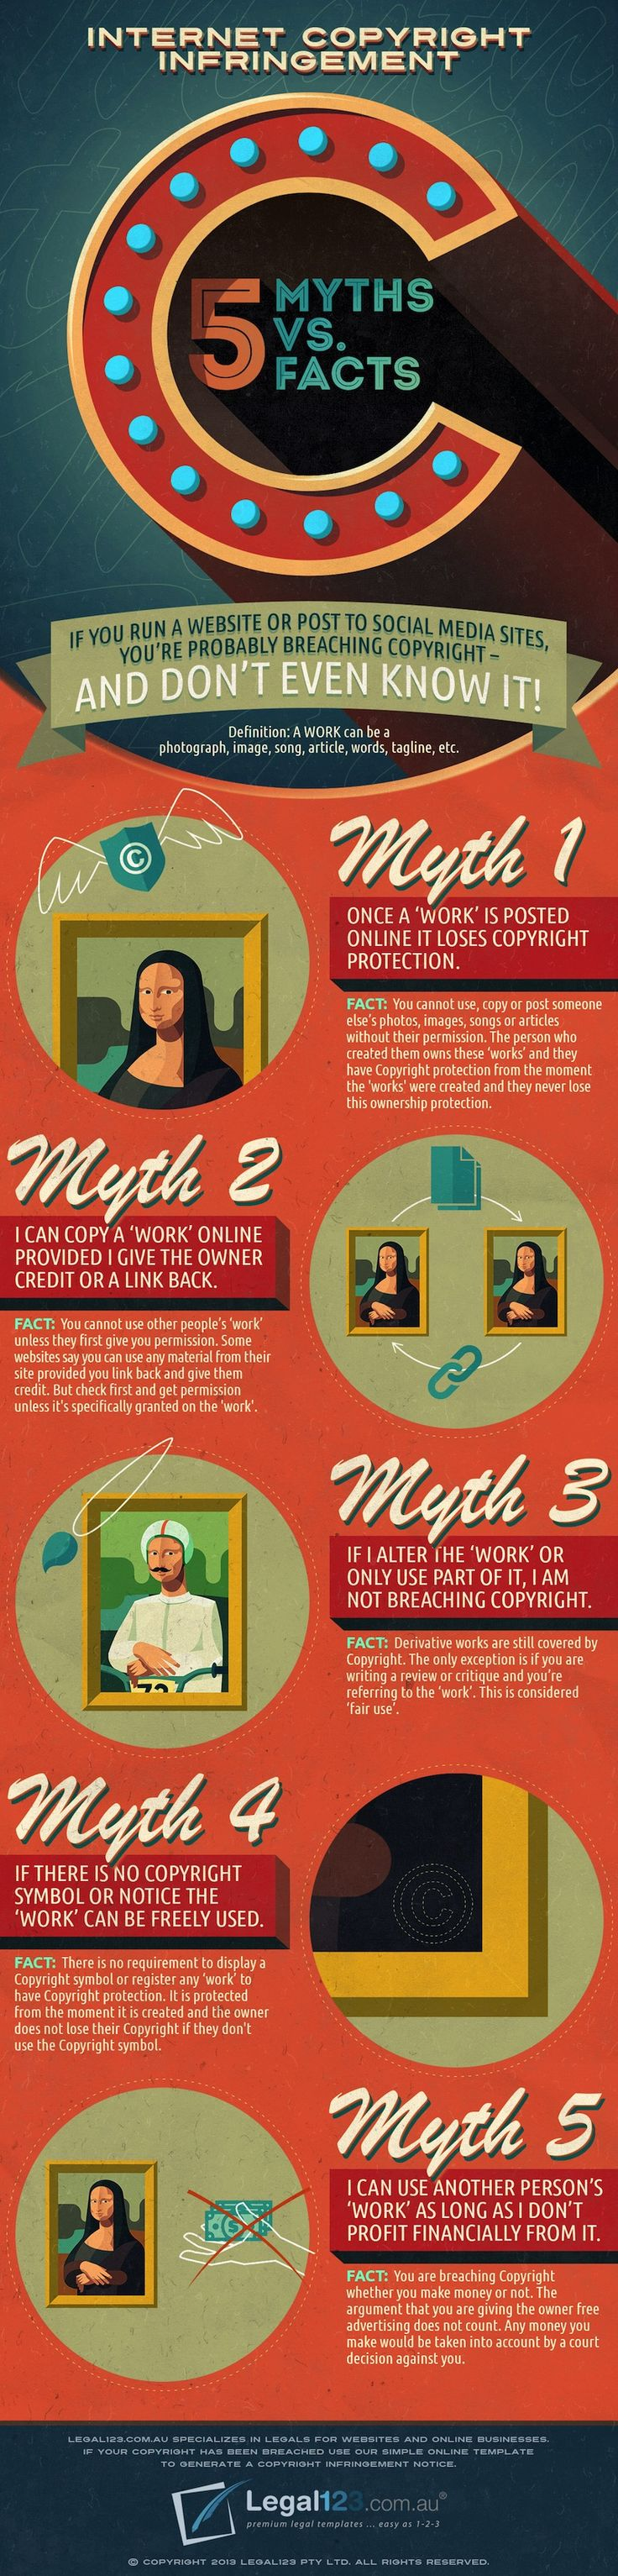 Copyright infringement #infographic. There is a great deal of misconception when it comes to finding and sharing images online. The large majority of people #sharing #images online are doing it wrong. They have no idea that the way in which they are sharing them can actually get them banned, blacklisted or even prosecuted in a court of law!